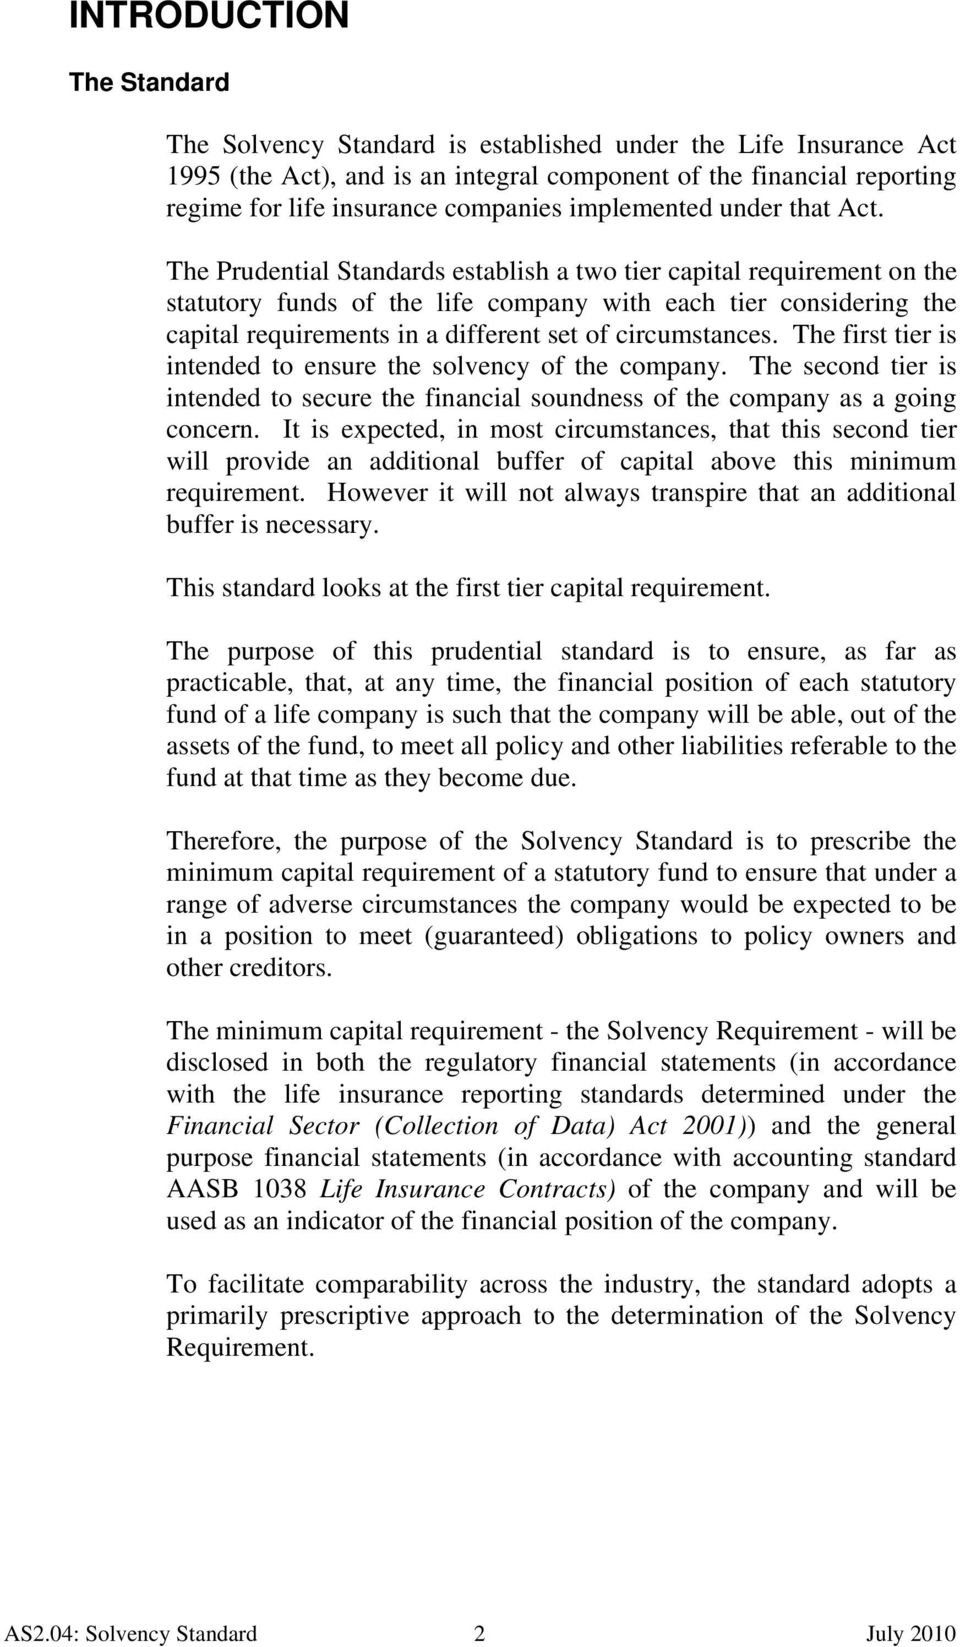 The Prudential Standards establish a two tier capital requirement on the statutory funds of the life company with each tier considering the capital requirements in a different set of circumstances.